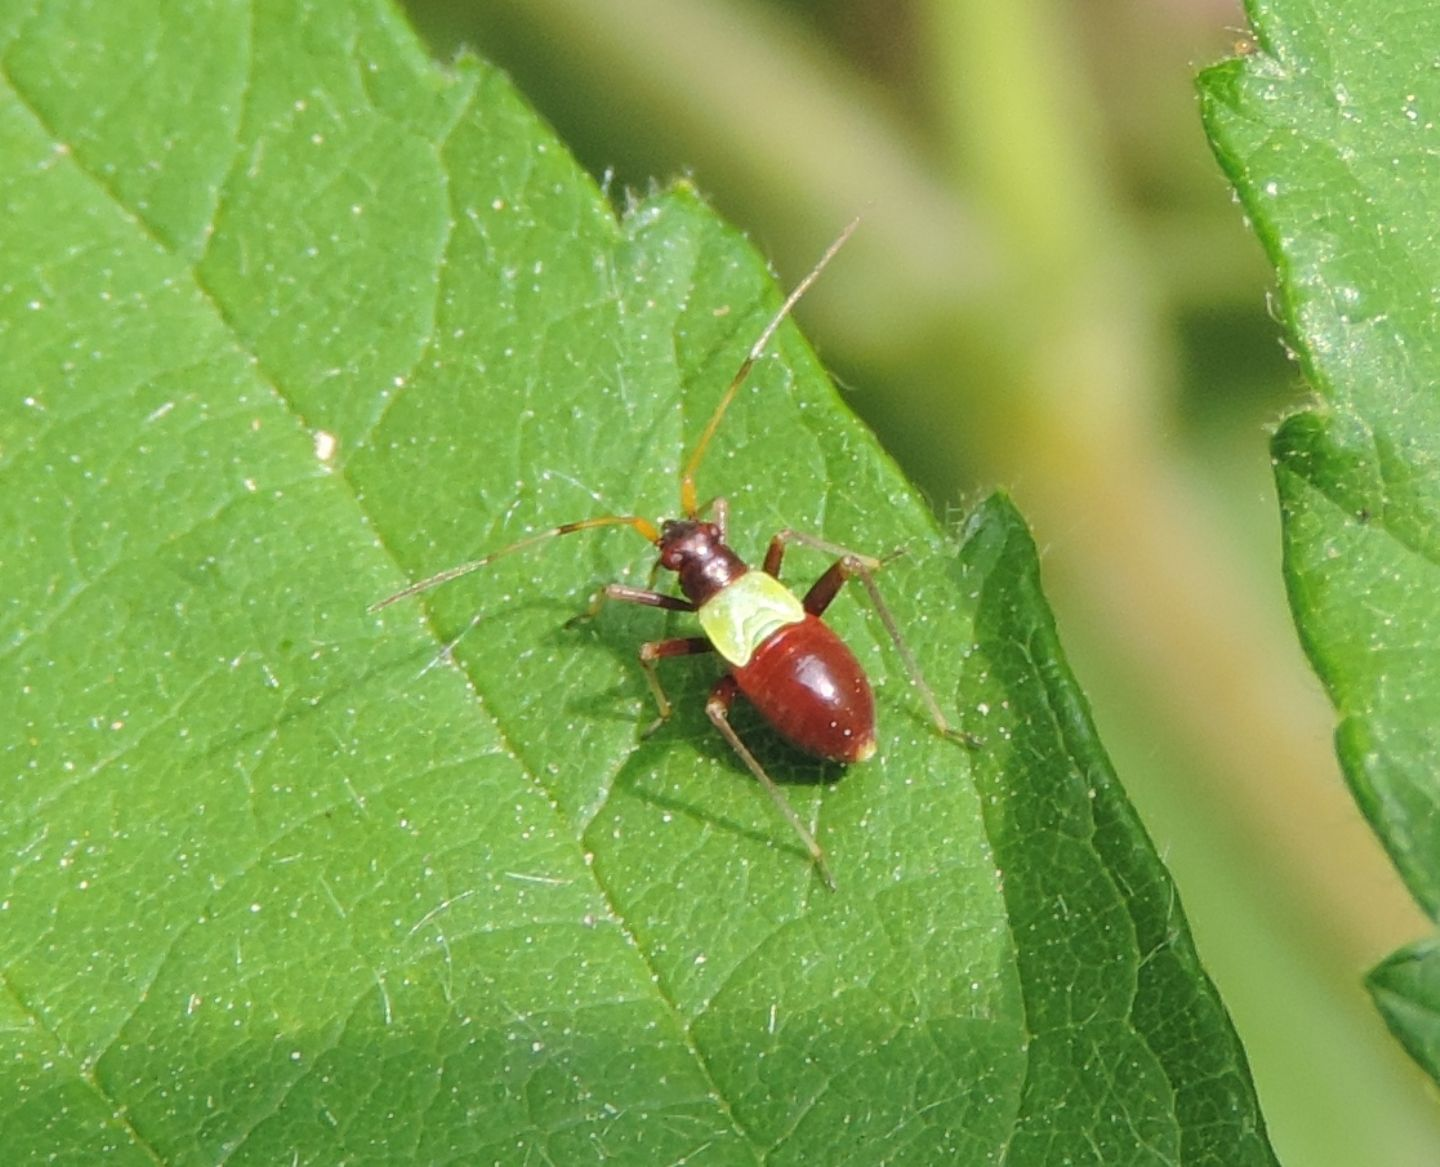 Quale Closterotomus?